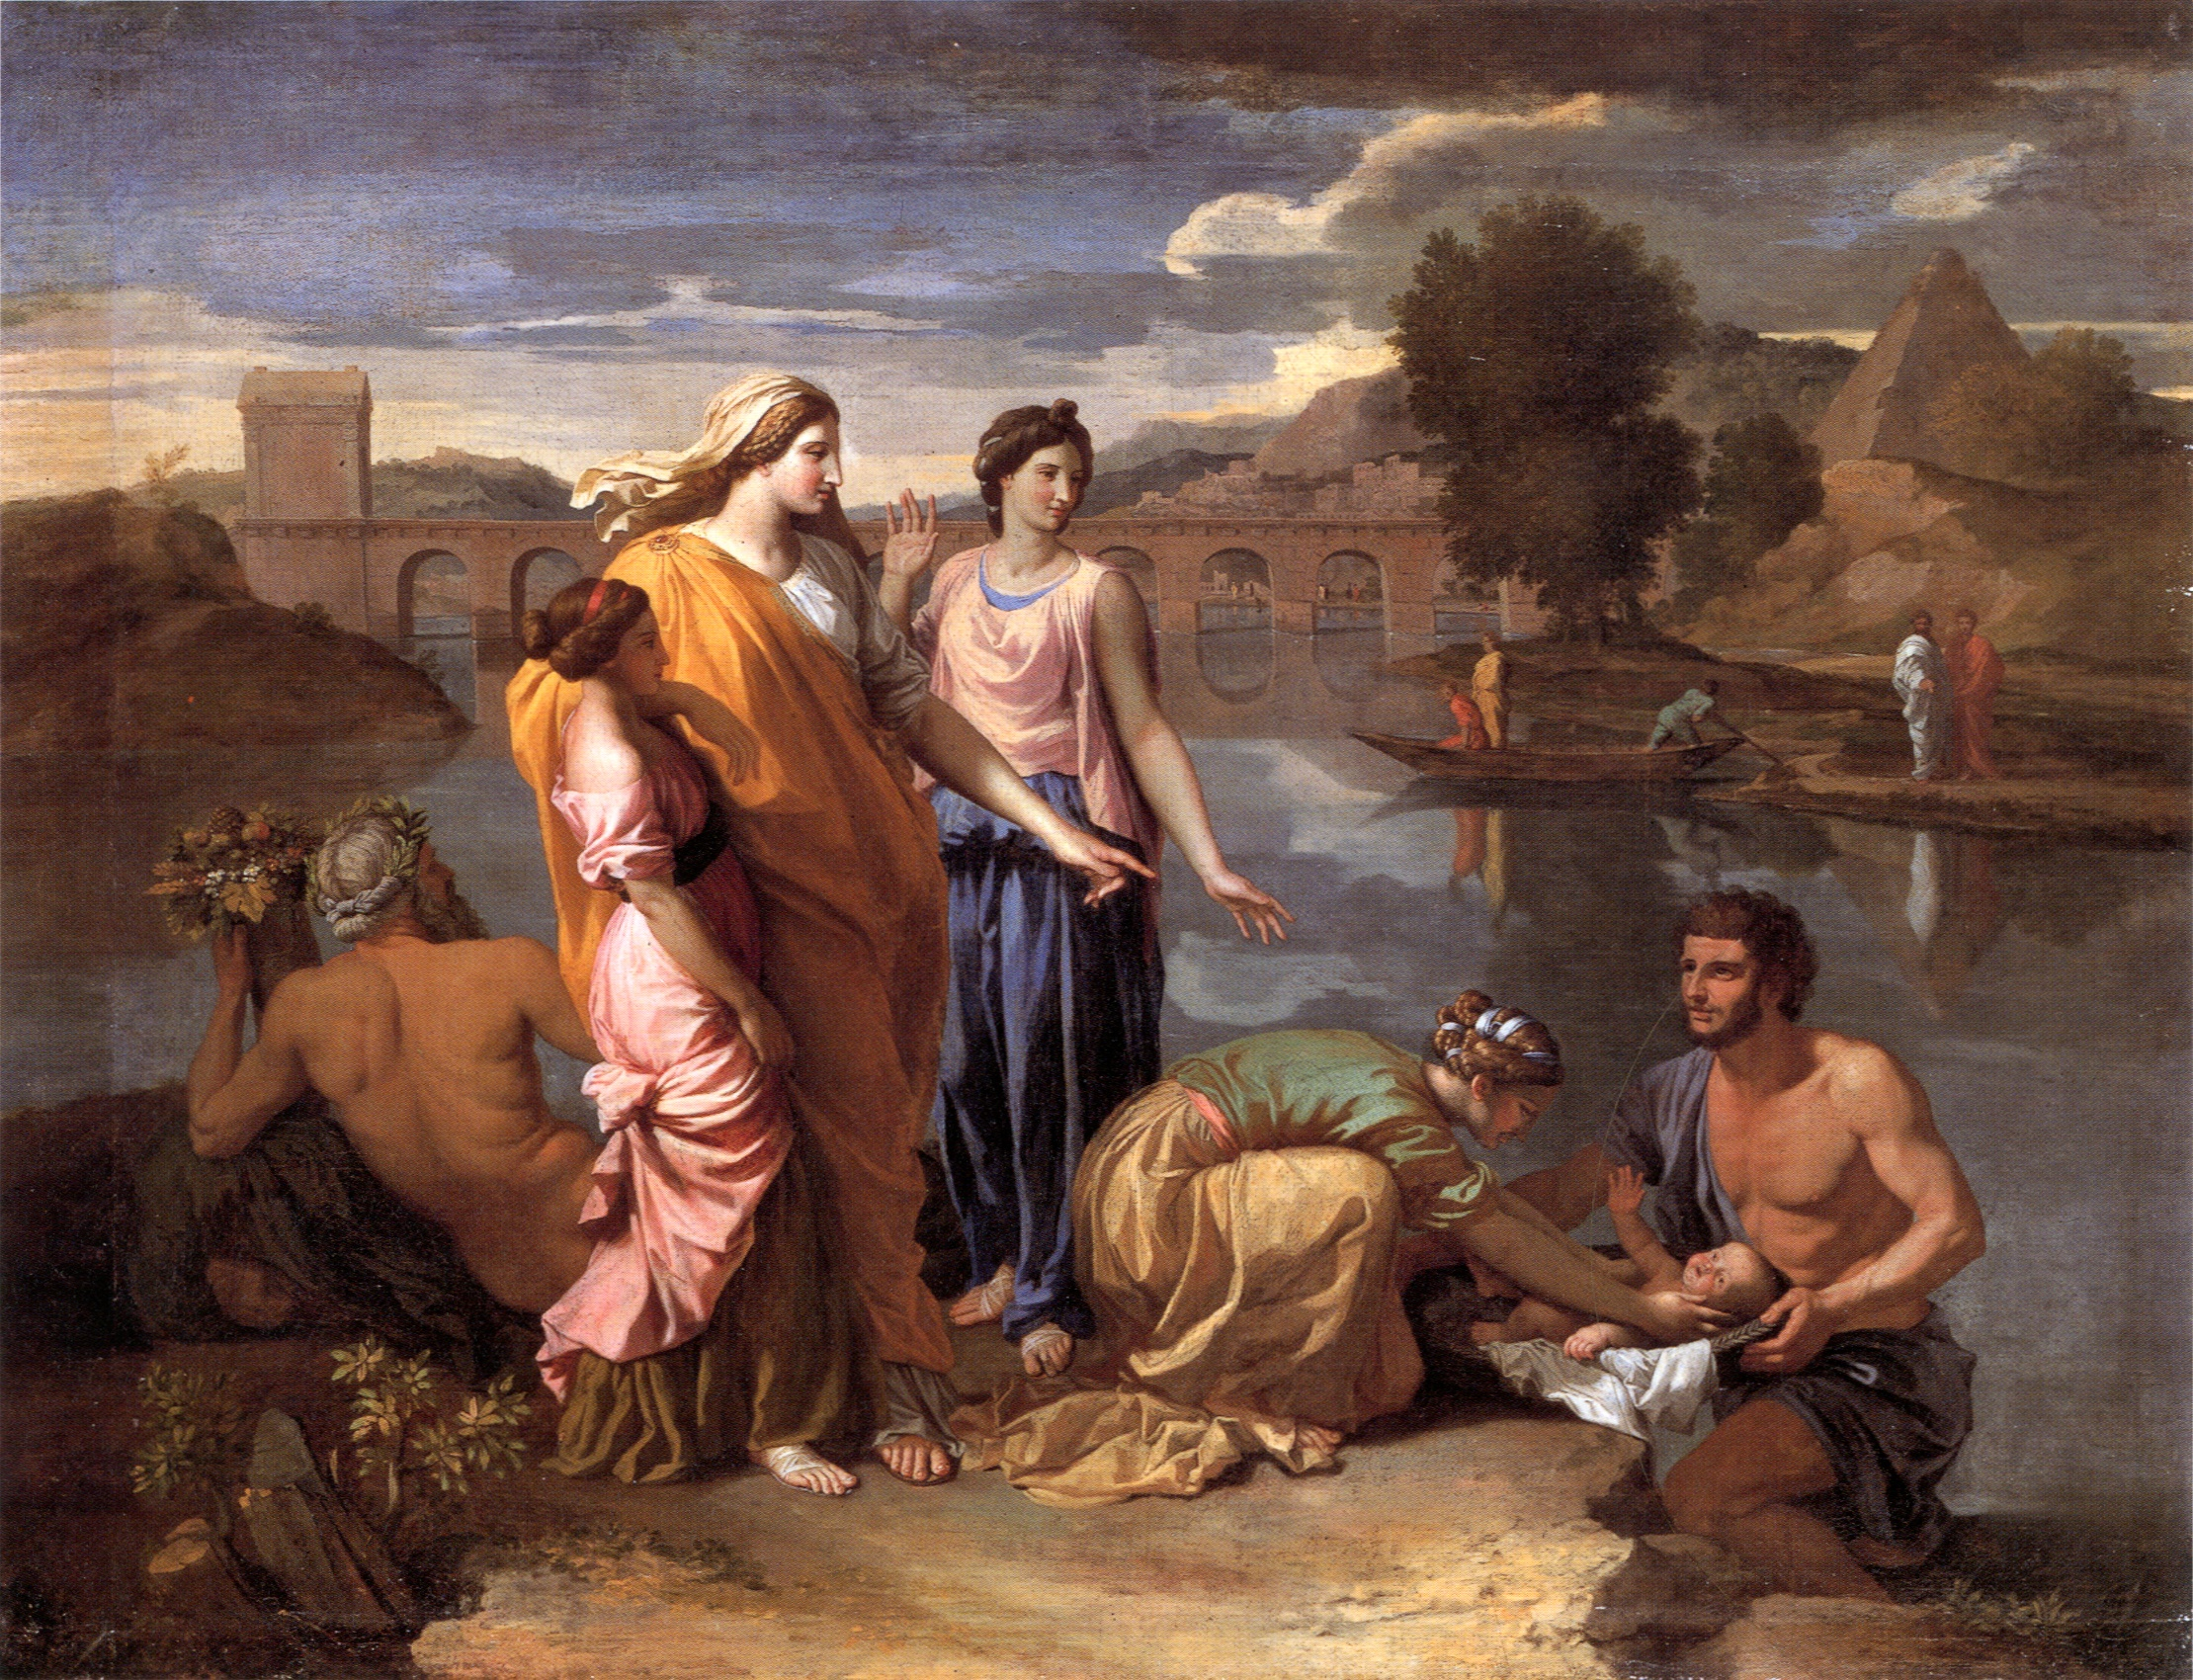 File:Poussin finding of moses 1638.jpg - Wikimedia Commons Moses Painting